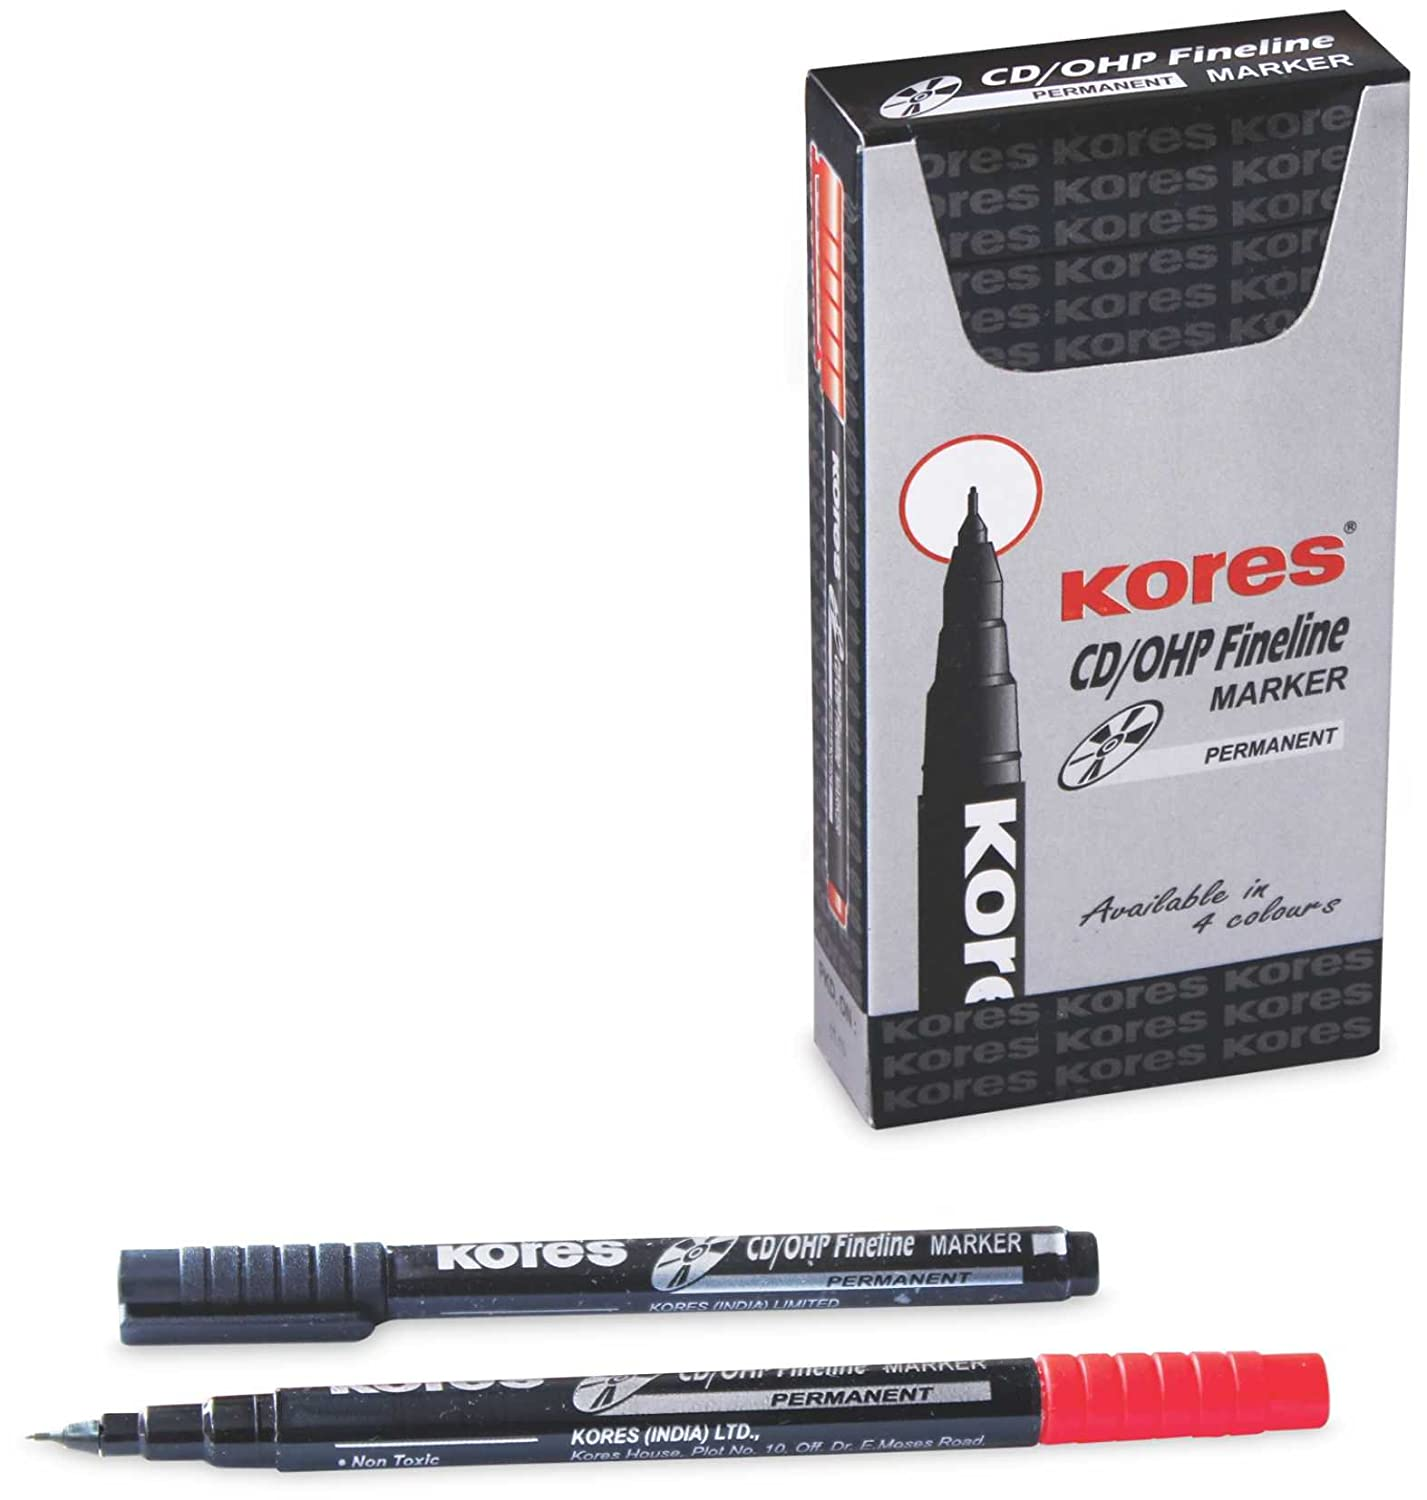 Kores CD/DVD 5PCs Pack Red Marker Pen